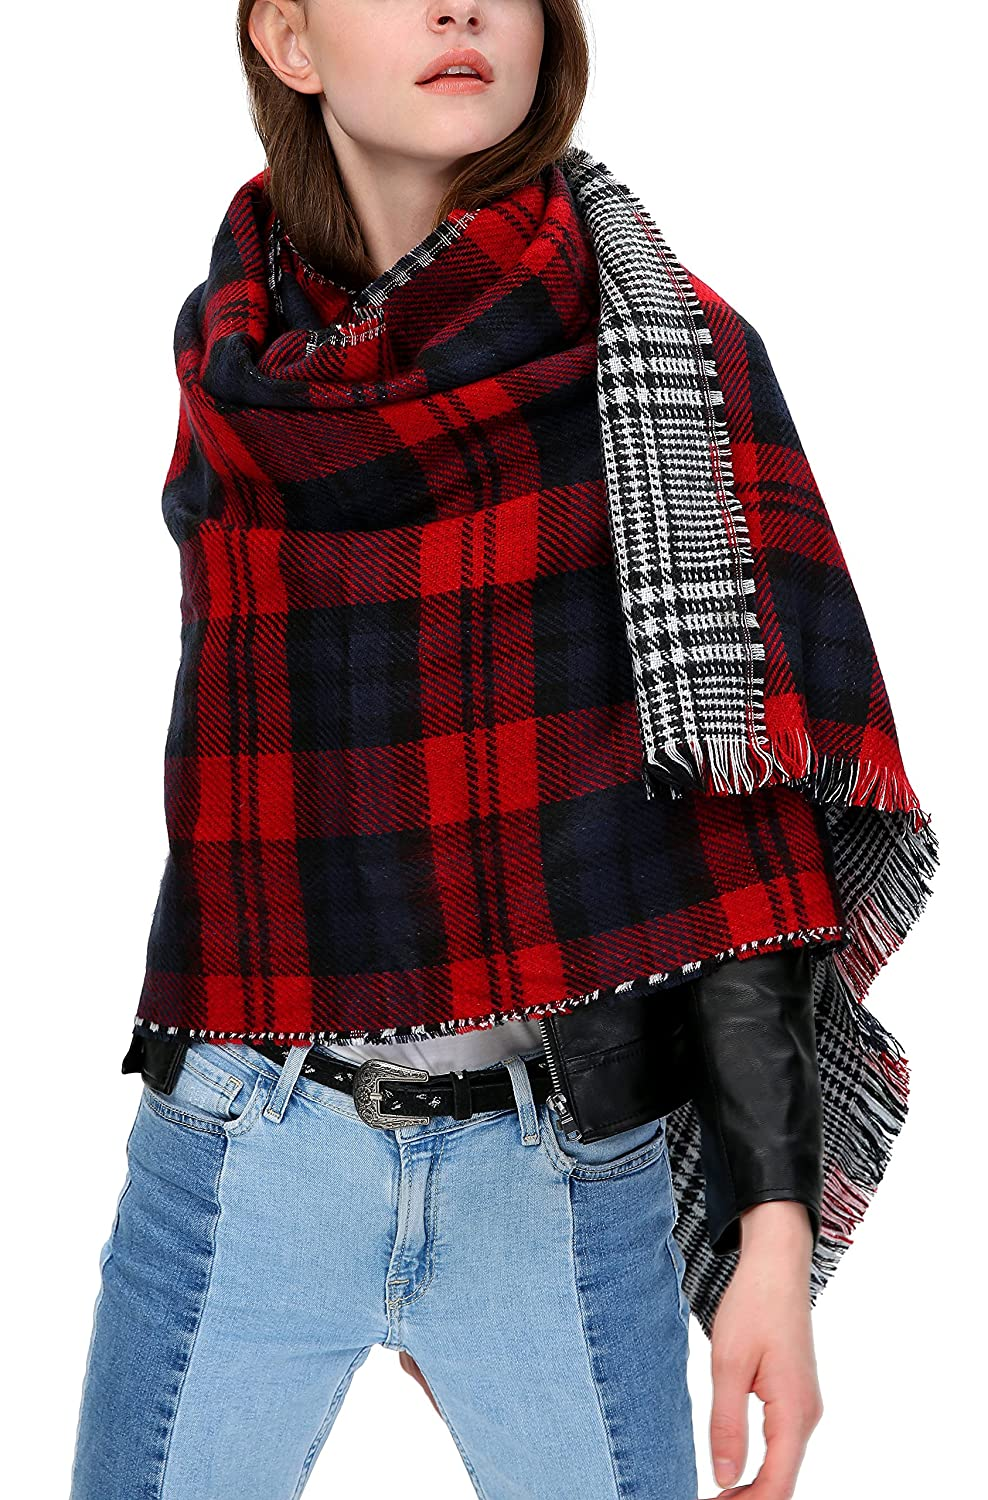 Women's Scarf Plaid Striped Scarves Shawls Blanket Poncho with Fringe Trims (Series 1 green) Bingo E-Commerce JX5008G